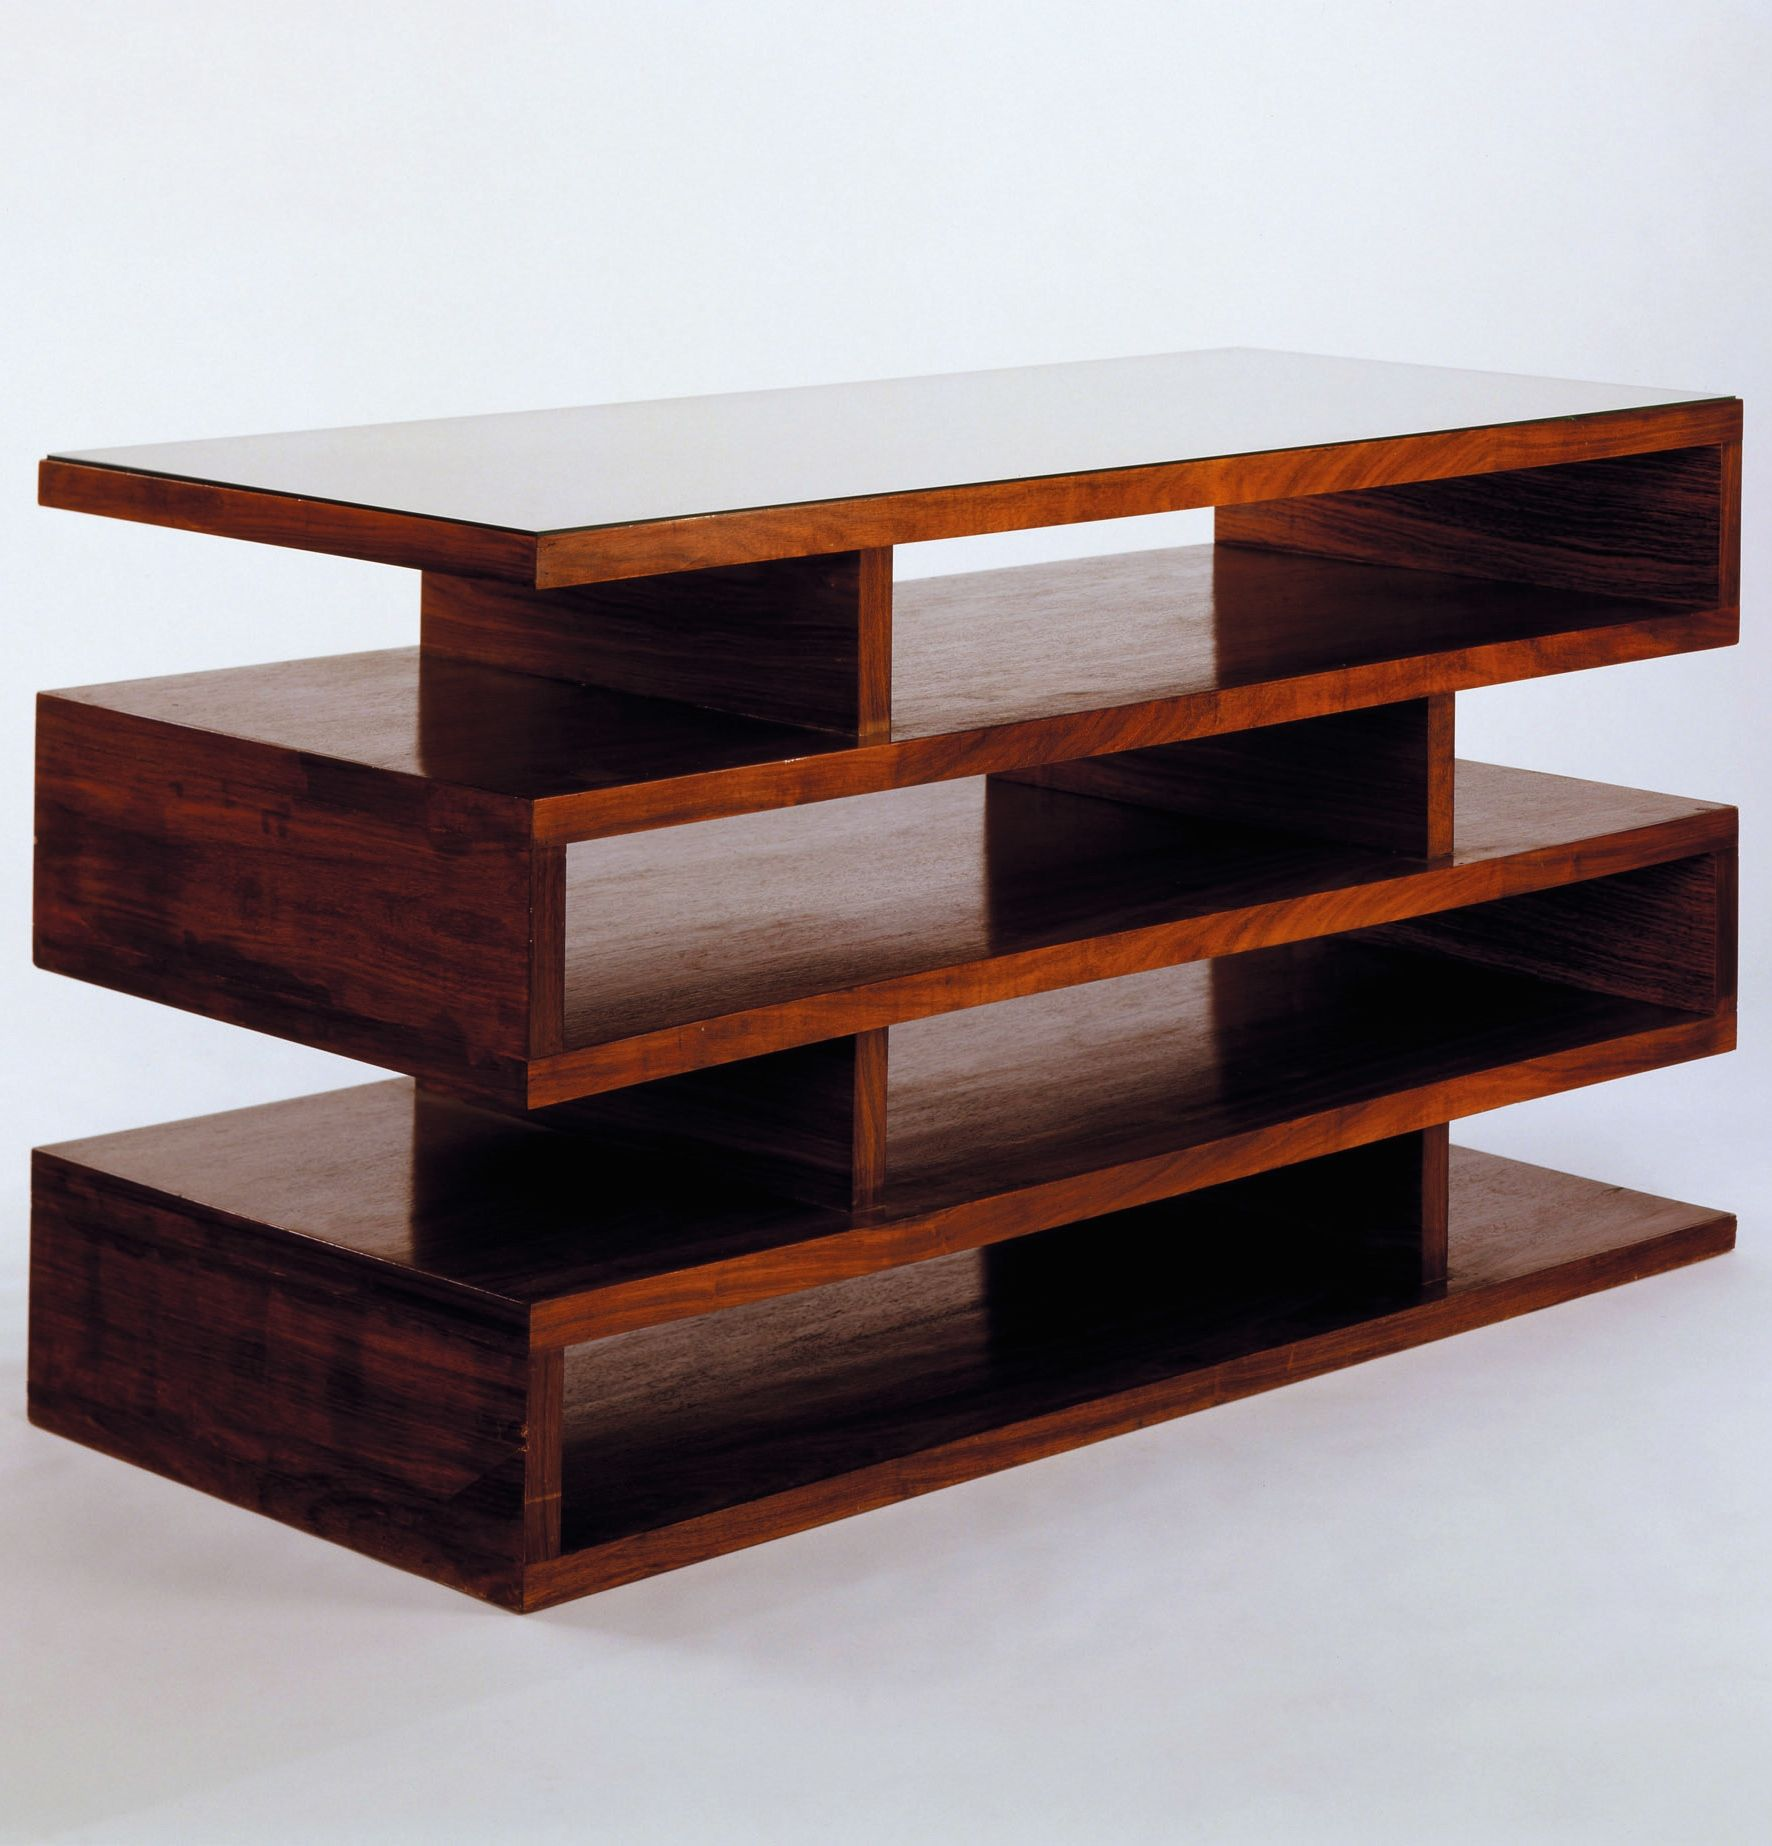 Walter Gropius; Newspaper Shelves, 1923. Bauhaus furniture